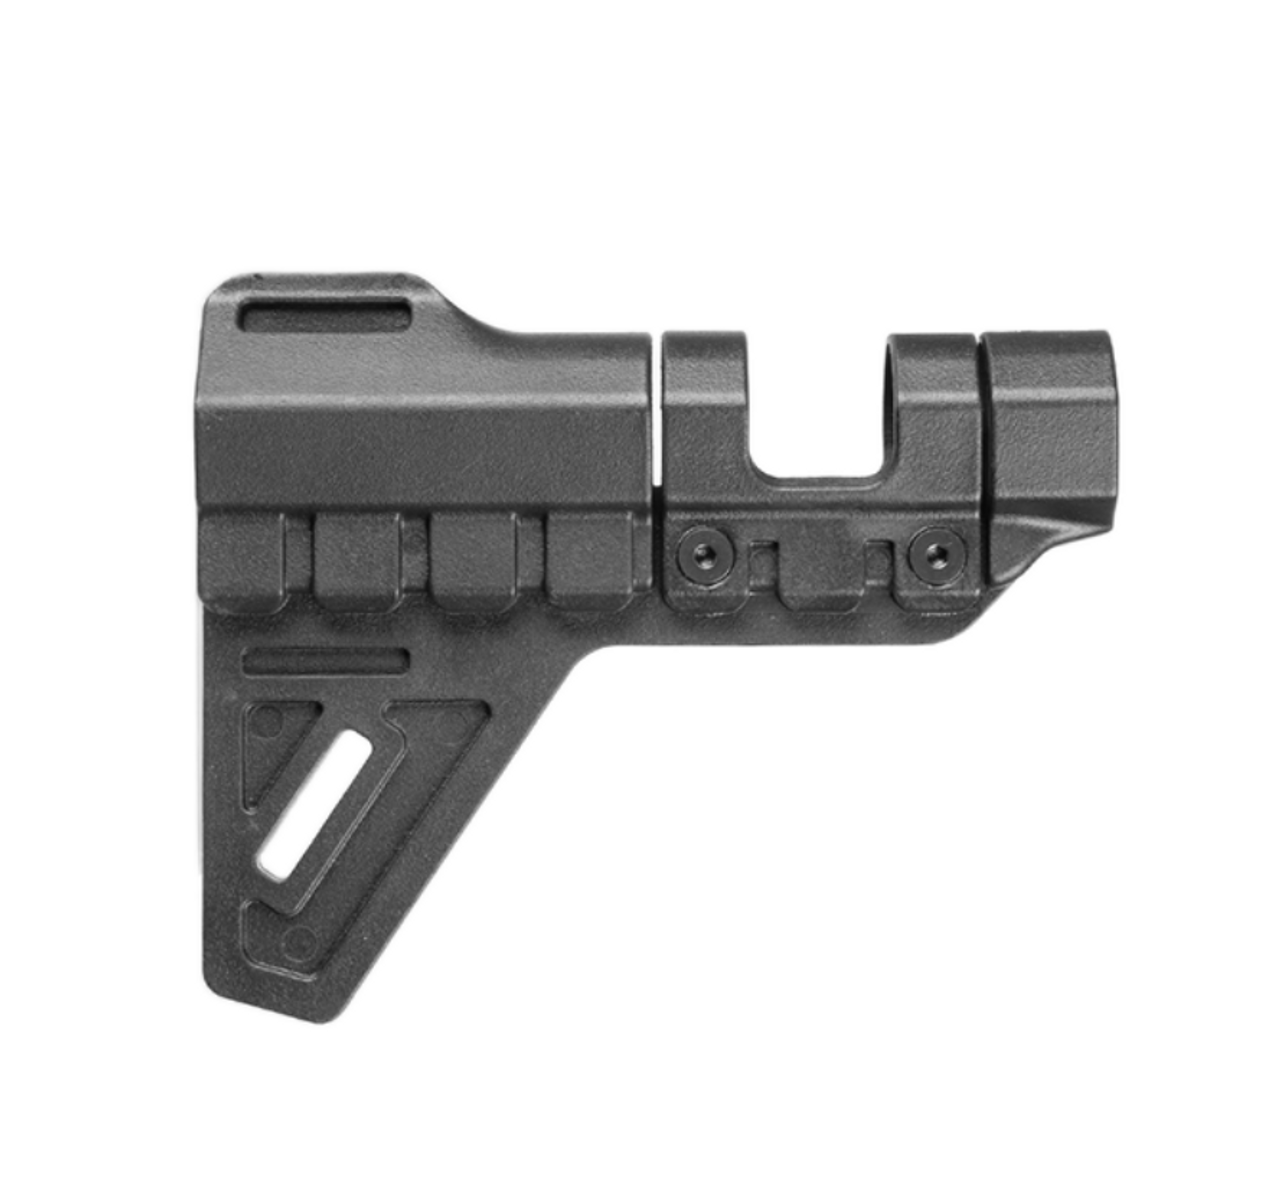 Breach Blade 1.0 Pistol brace